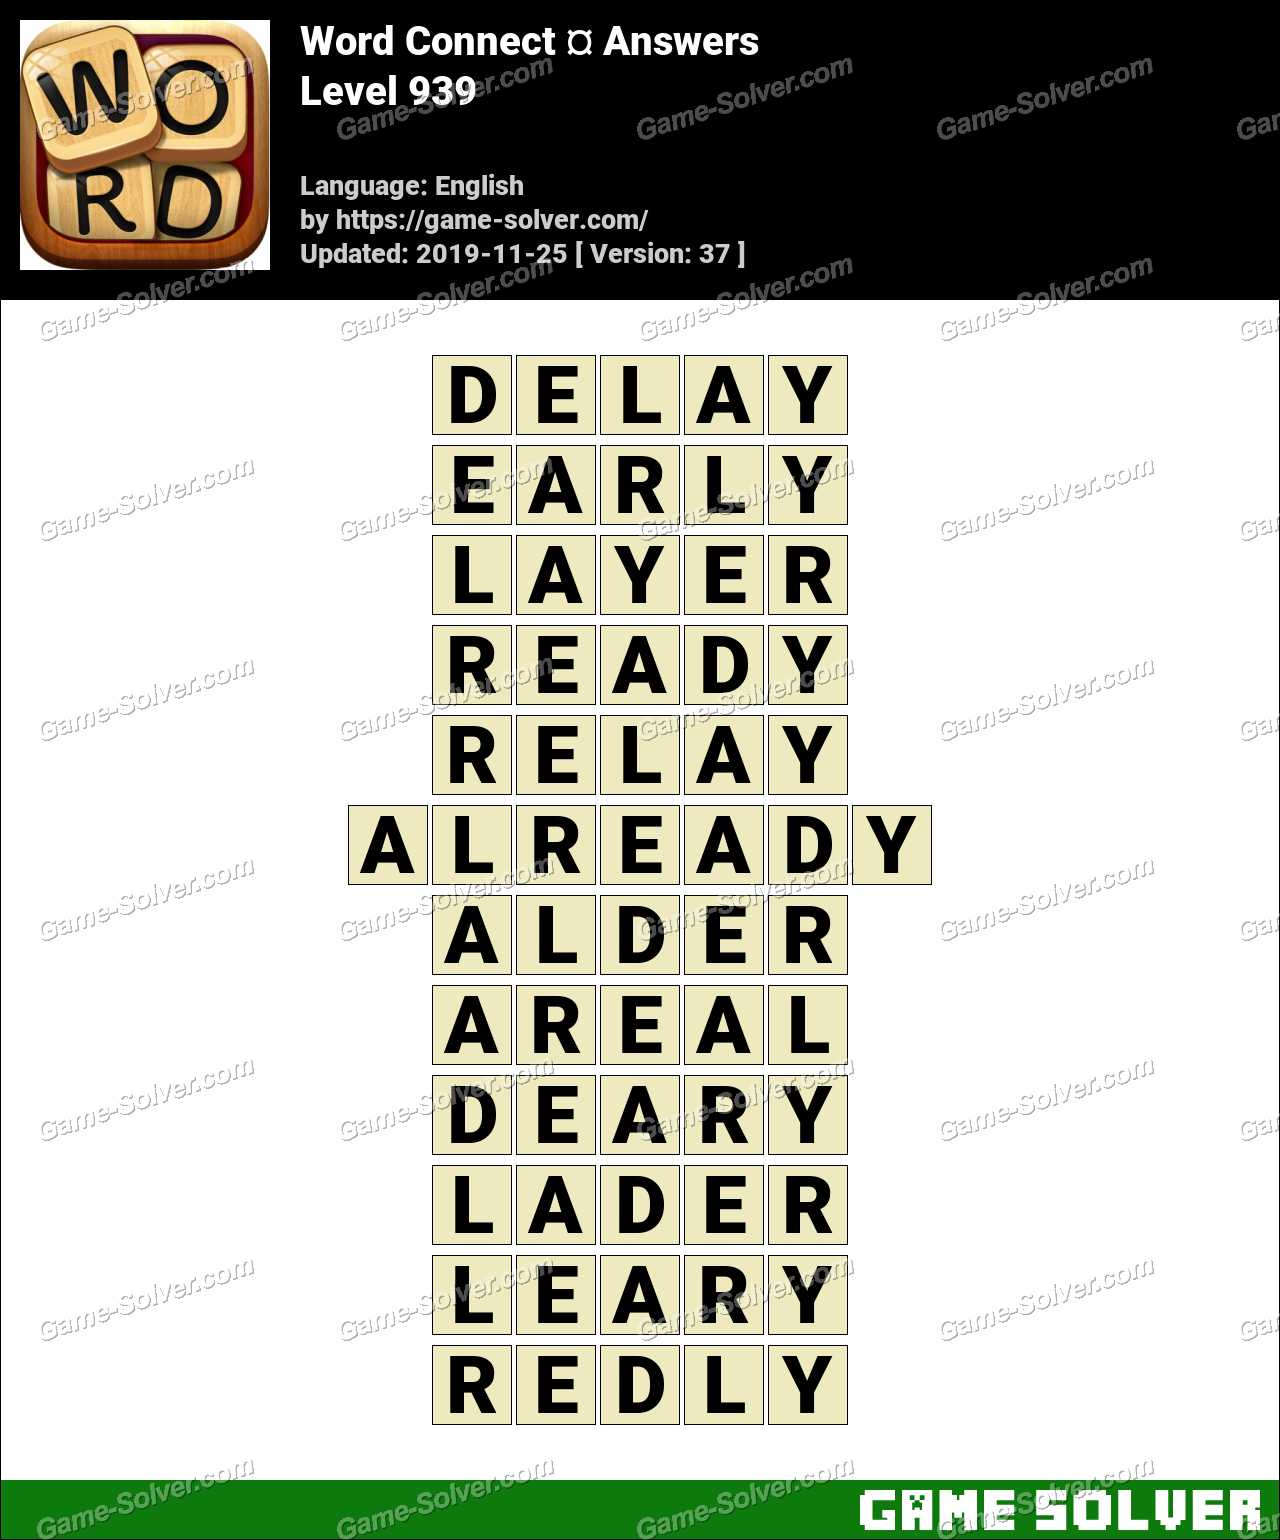 Word Connect Level 939 Answers